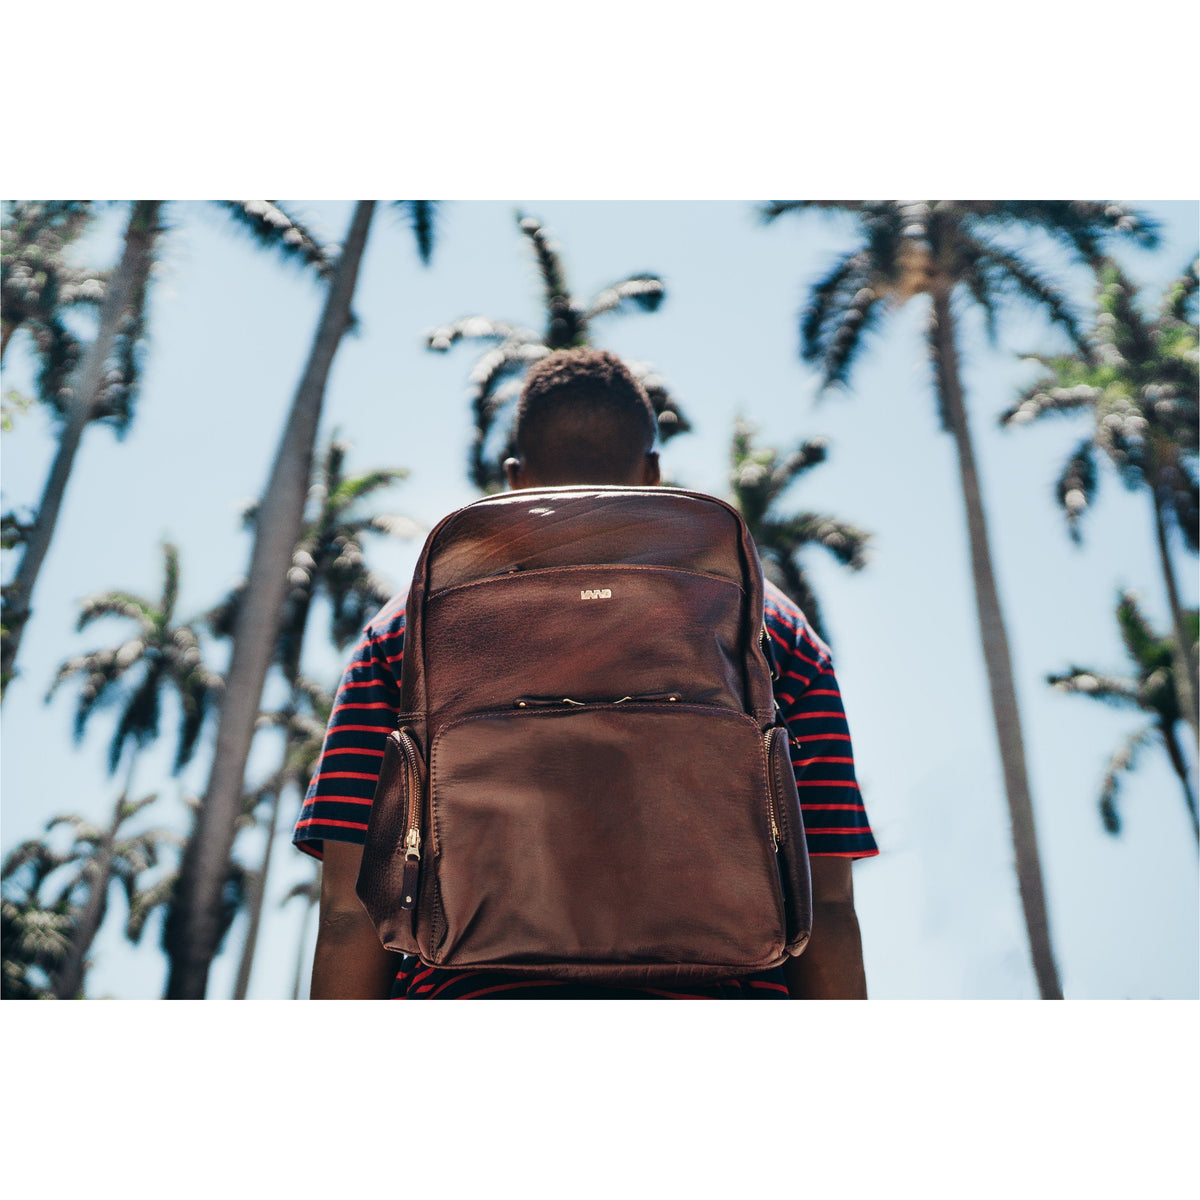 Limited Bardot Backpack